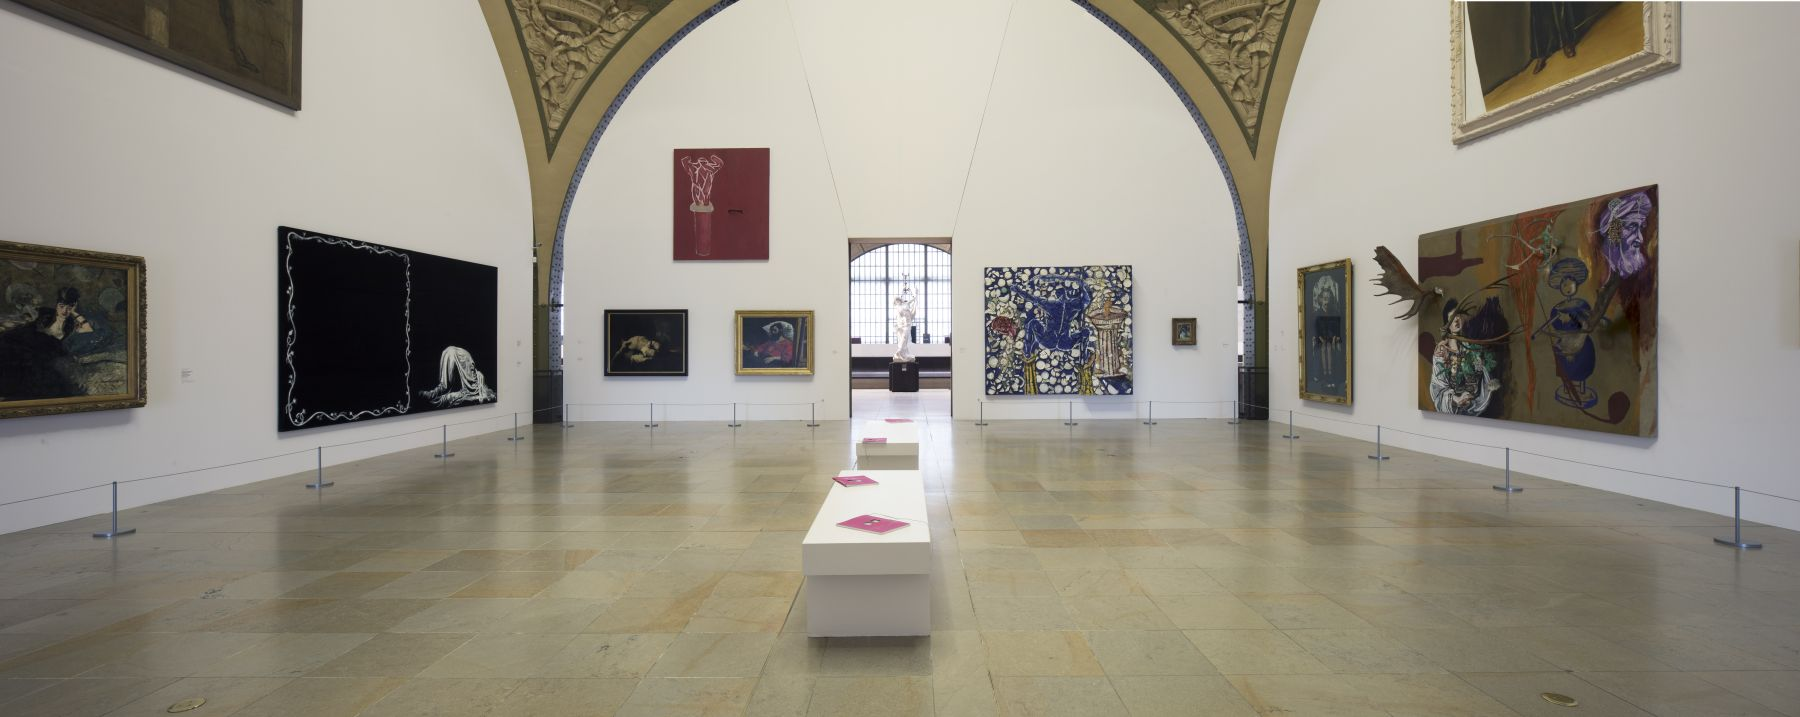 Installation view, Orsay Through the Eyes of Julian Schnabel,Musée d'Orsay, Paris, 2018